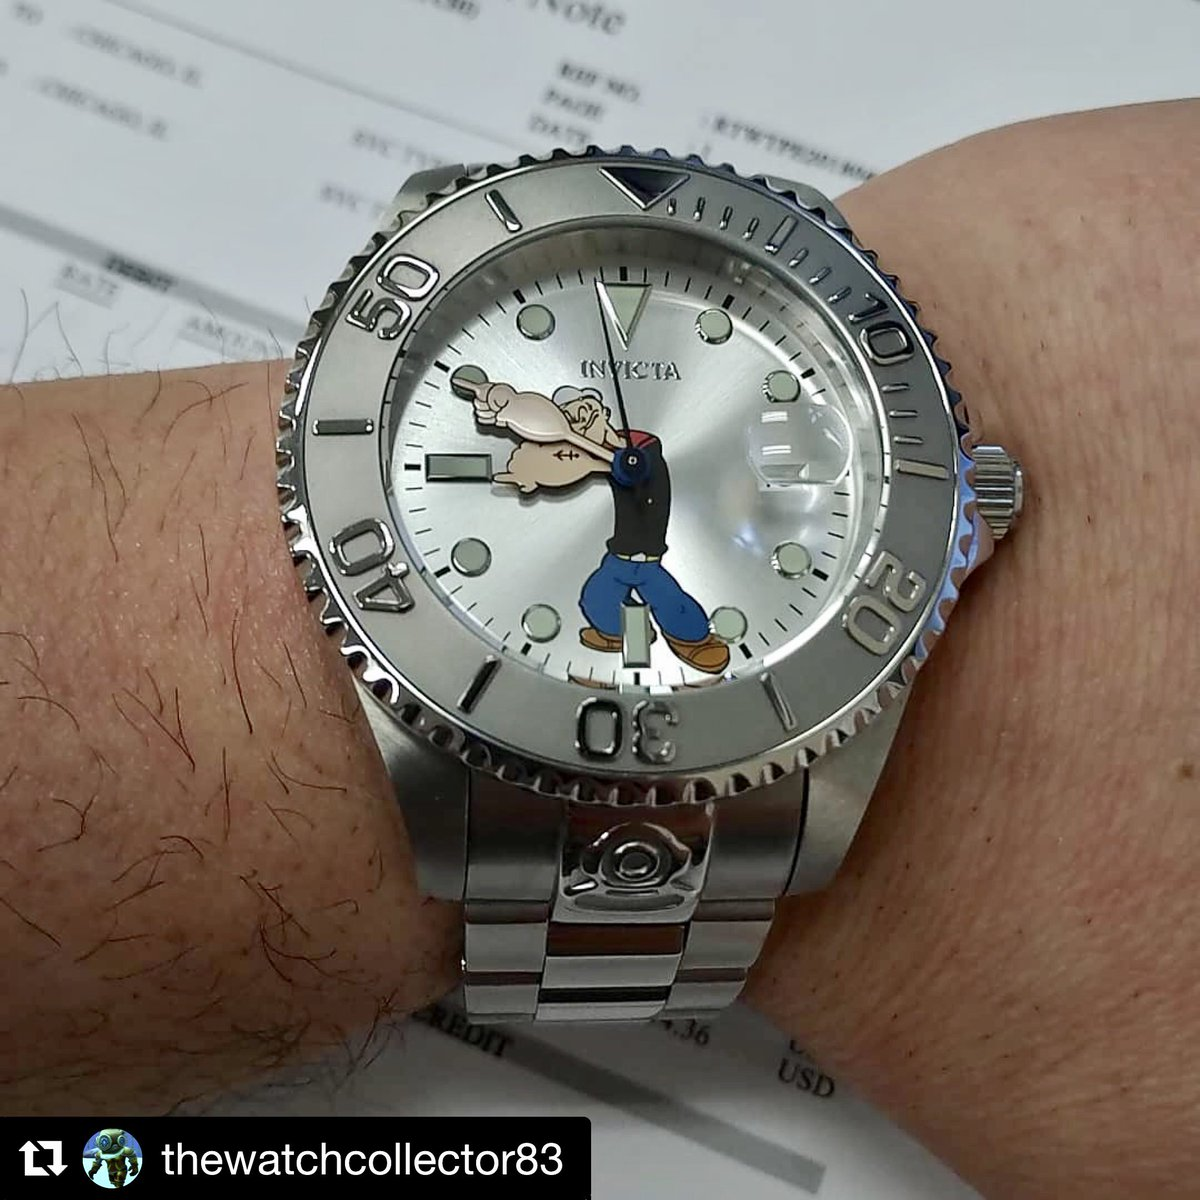 What a great watch ya got there!#Popeye #PopeyeStrong #StrongtotheFinish #PopeyeStyle #watch #fashion #accessories @invictastores